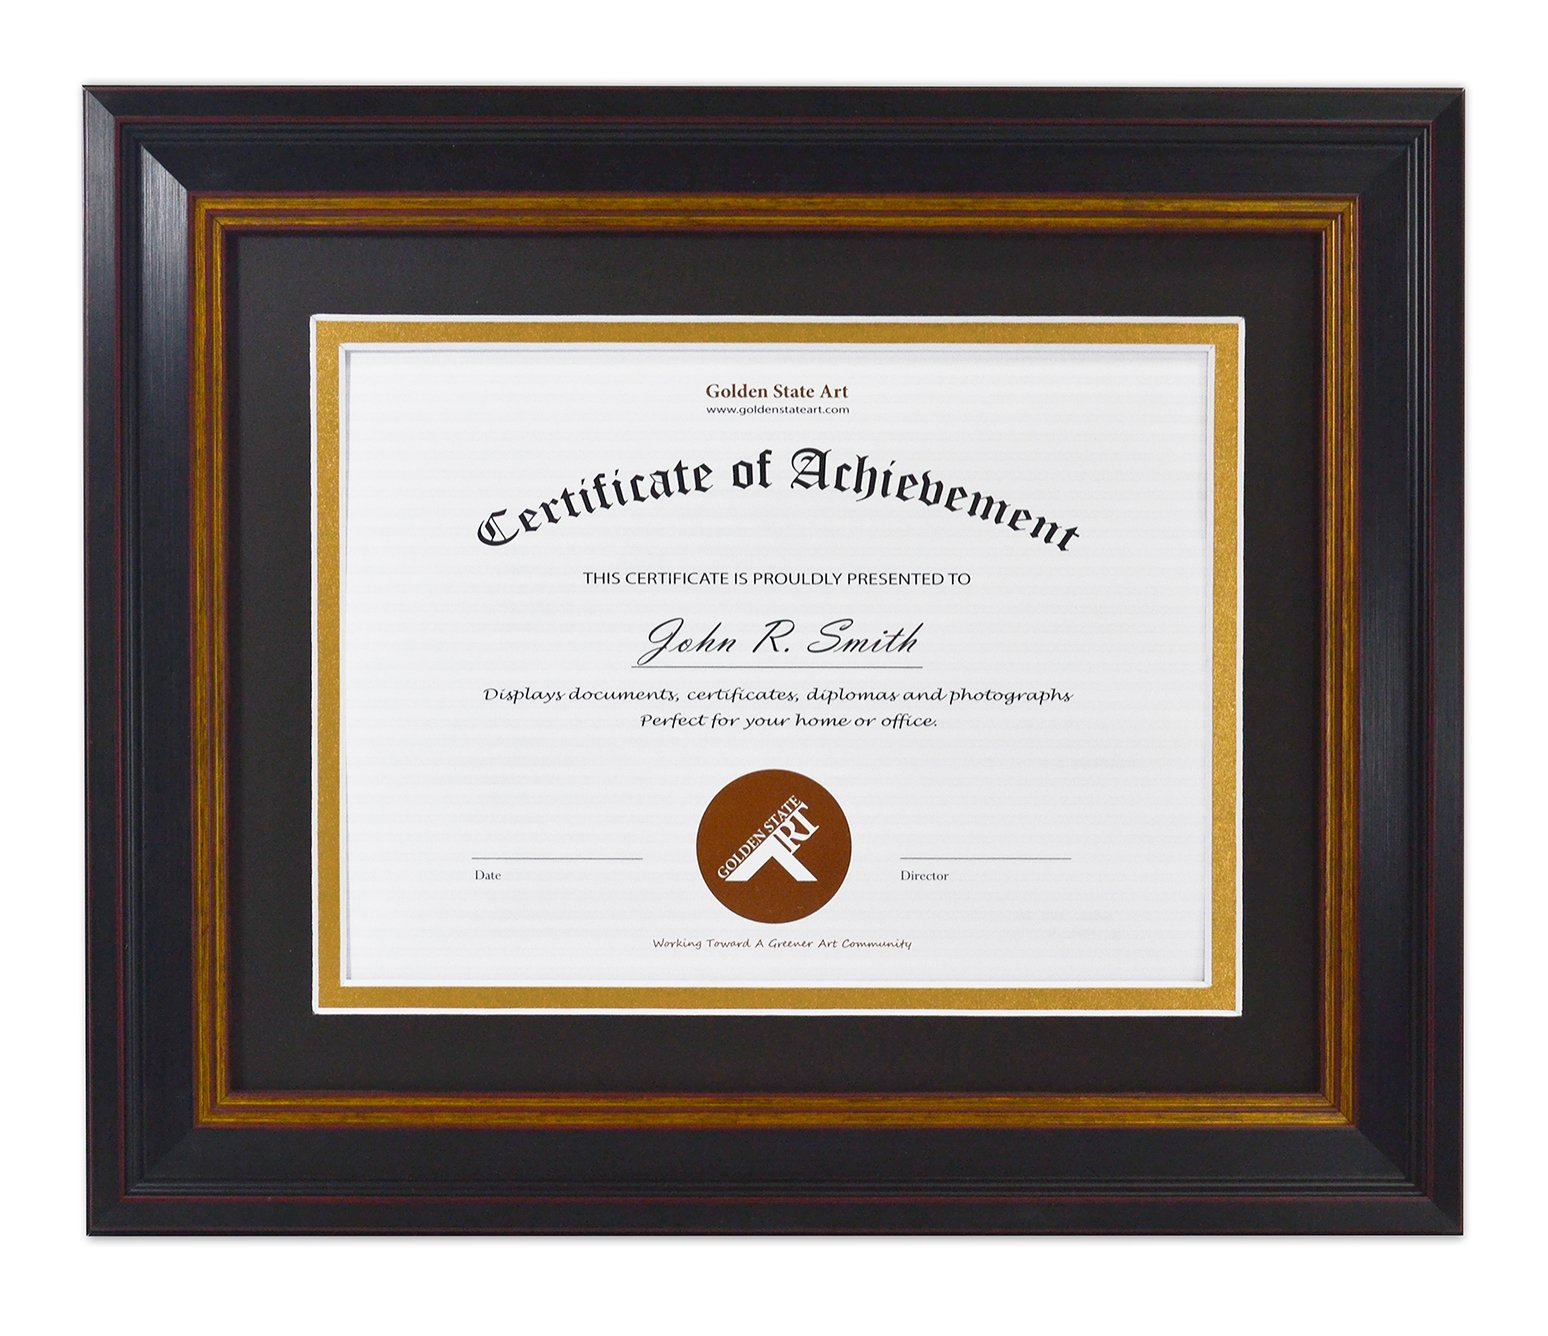 Golden State Art, 8x10 Frame for 6x8 Diploma/Certificate, Black Gold & Burgundy Color. Includes Black Over Gold Double Mat, Real Glass & Table-top Display by Golden State Art